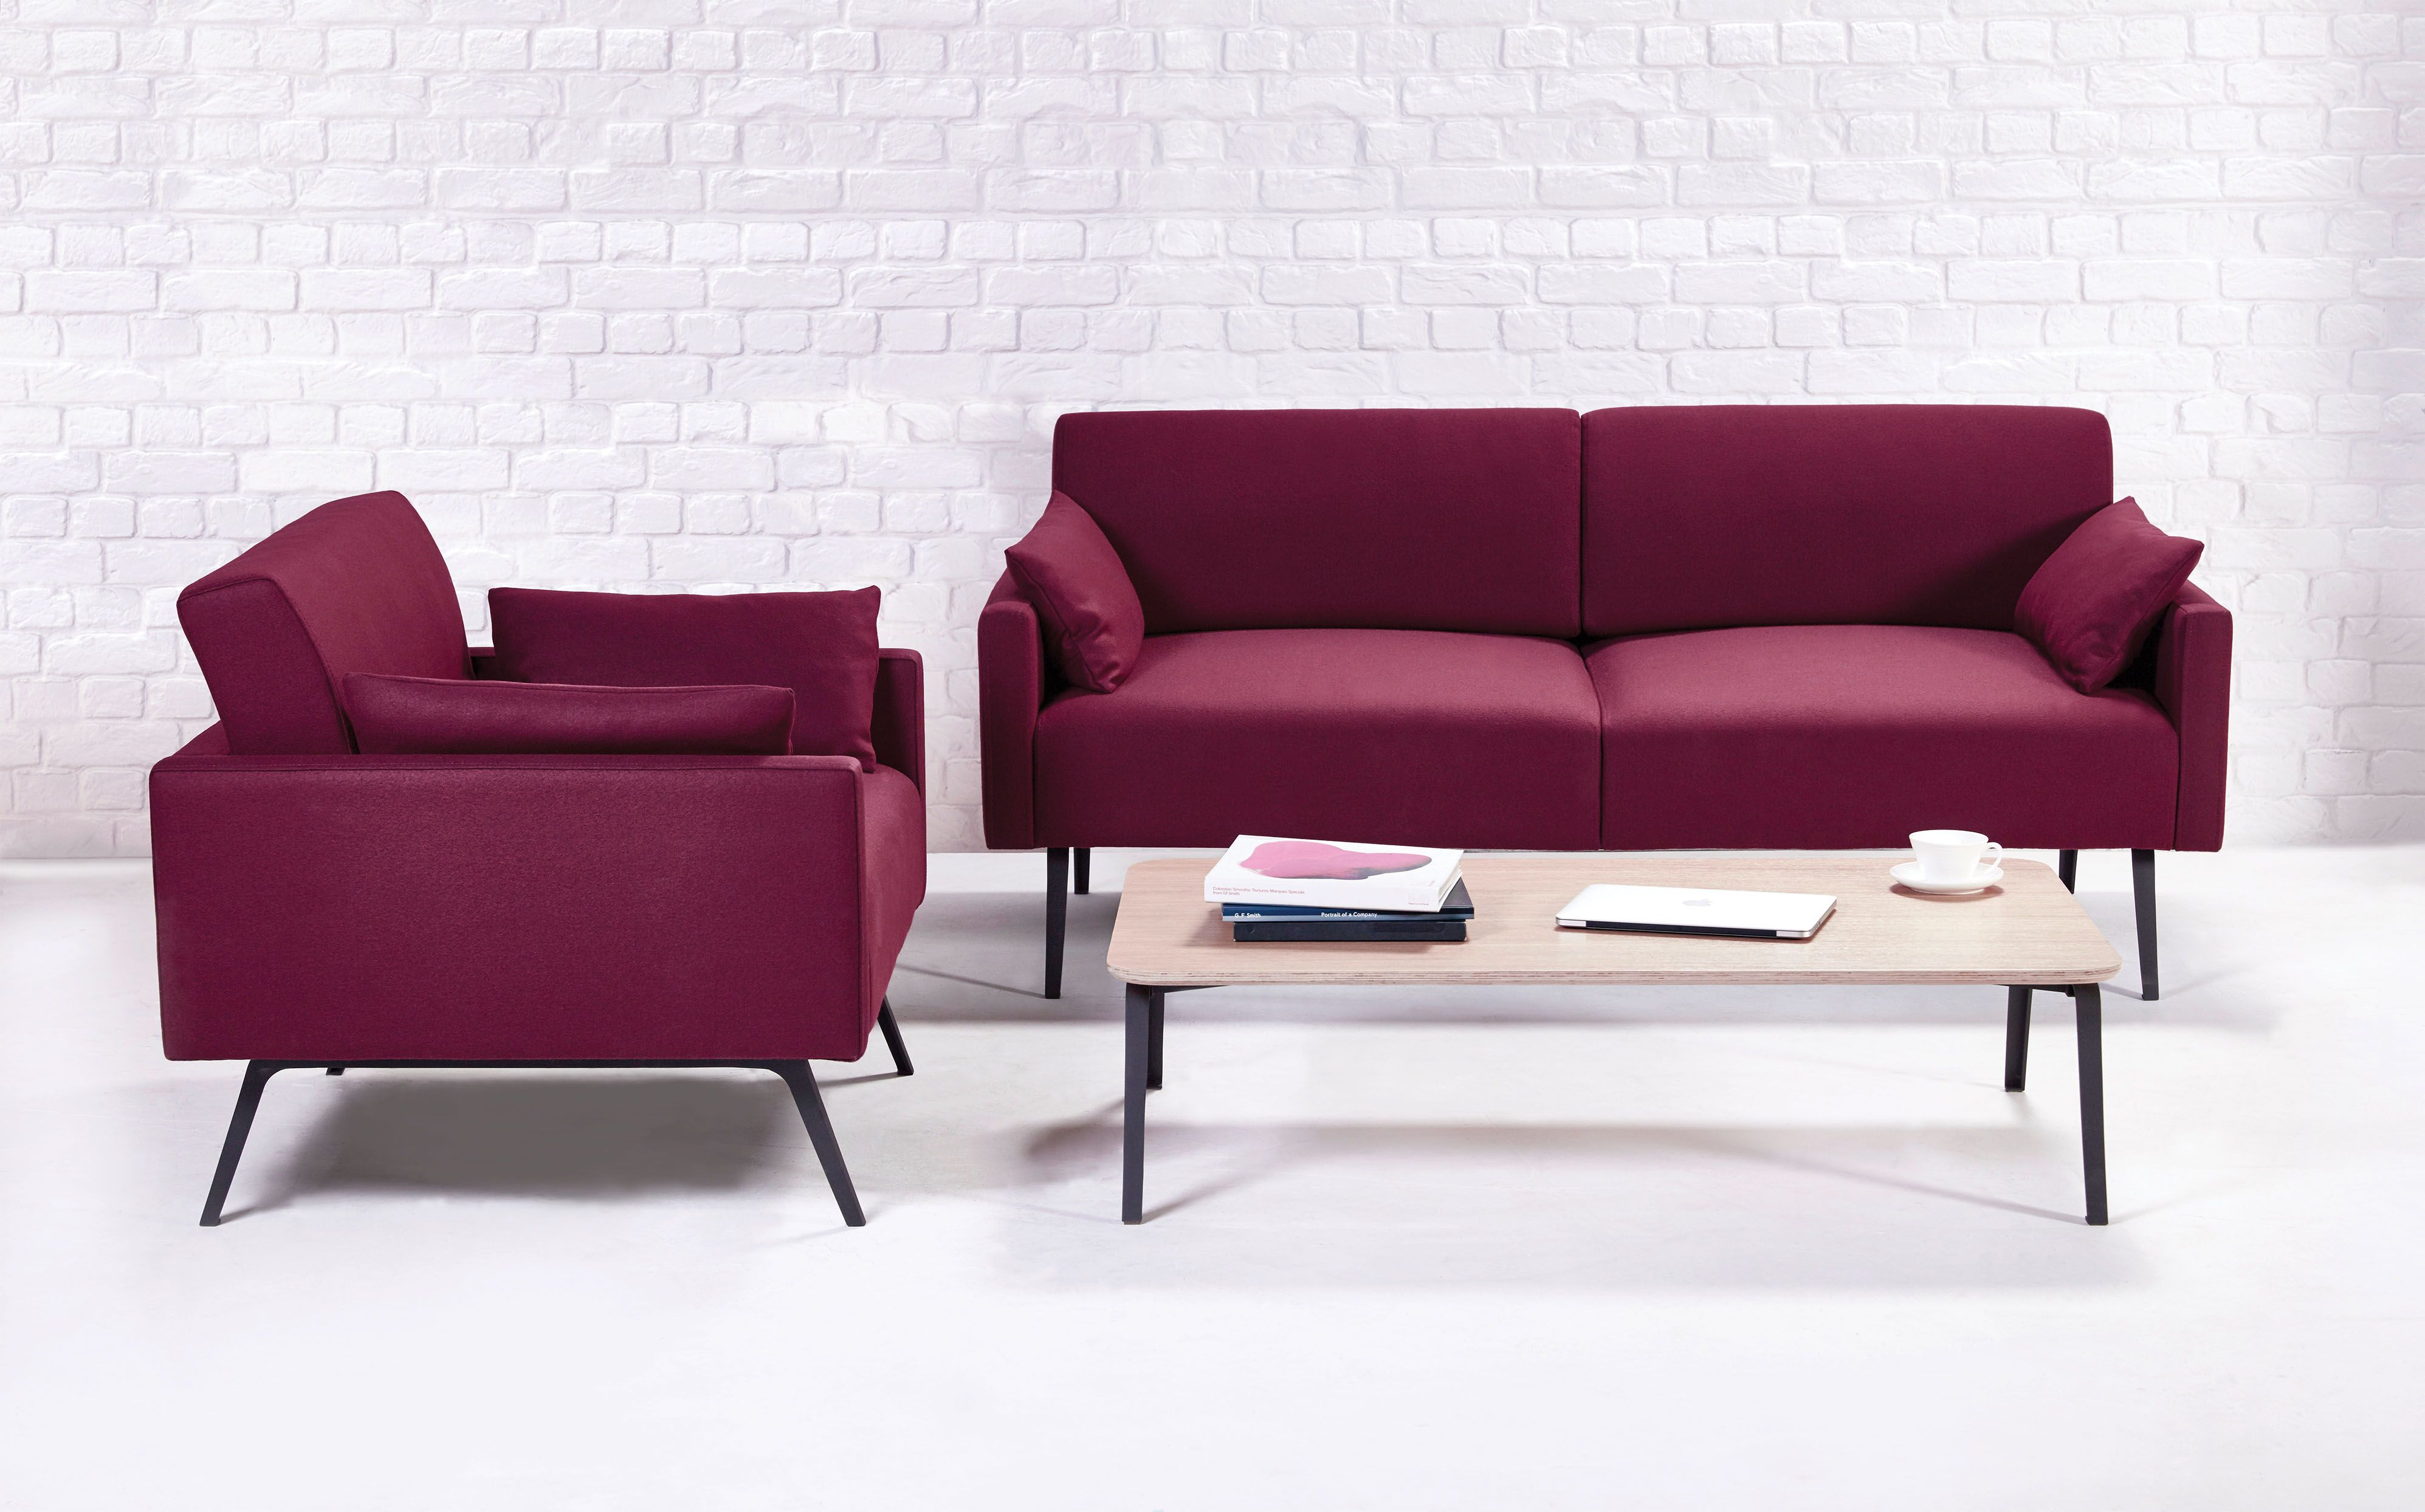 Sofa Repair Seattle Tryst Corner Sofa With Integrated Table And Power Sofas Sofa